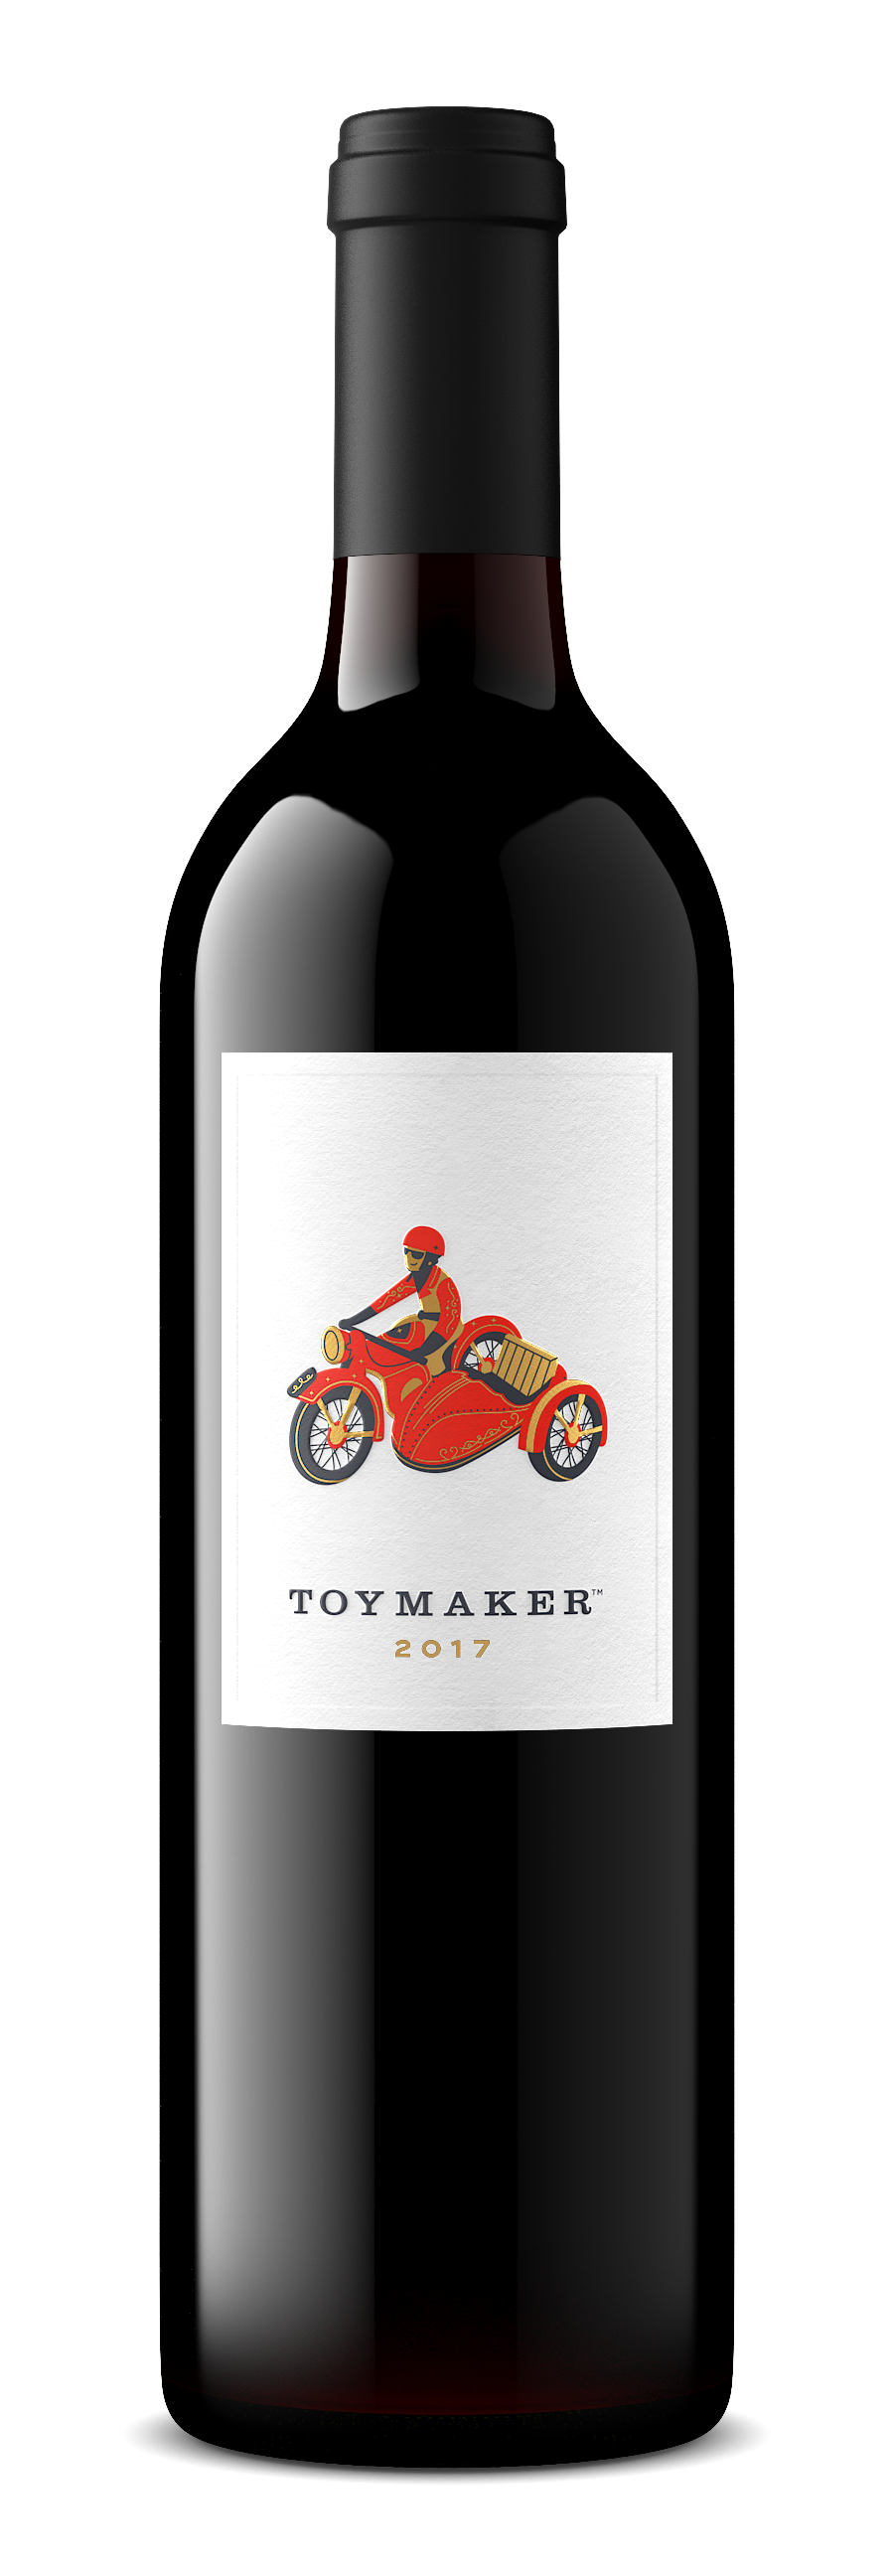 2016 ToyMaker Cellars Cabernet Sauvignon Napa Valley Red Wine Label with Toy Train label, made by Napa Valley winemaker Martha McClellan. Rare & limited Grand Cru Napa Valley Cabernet Sauvignon.